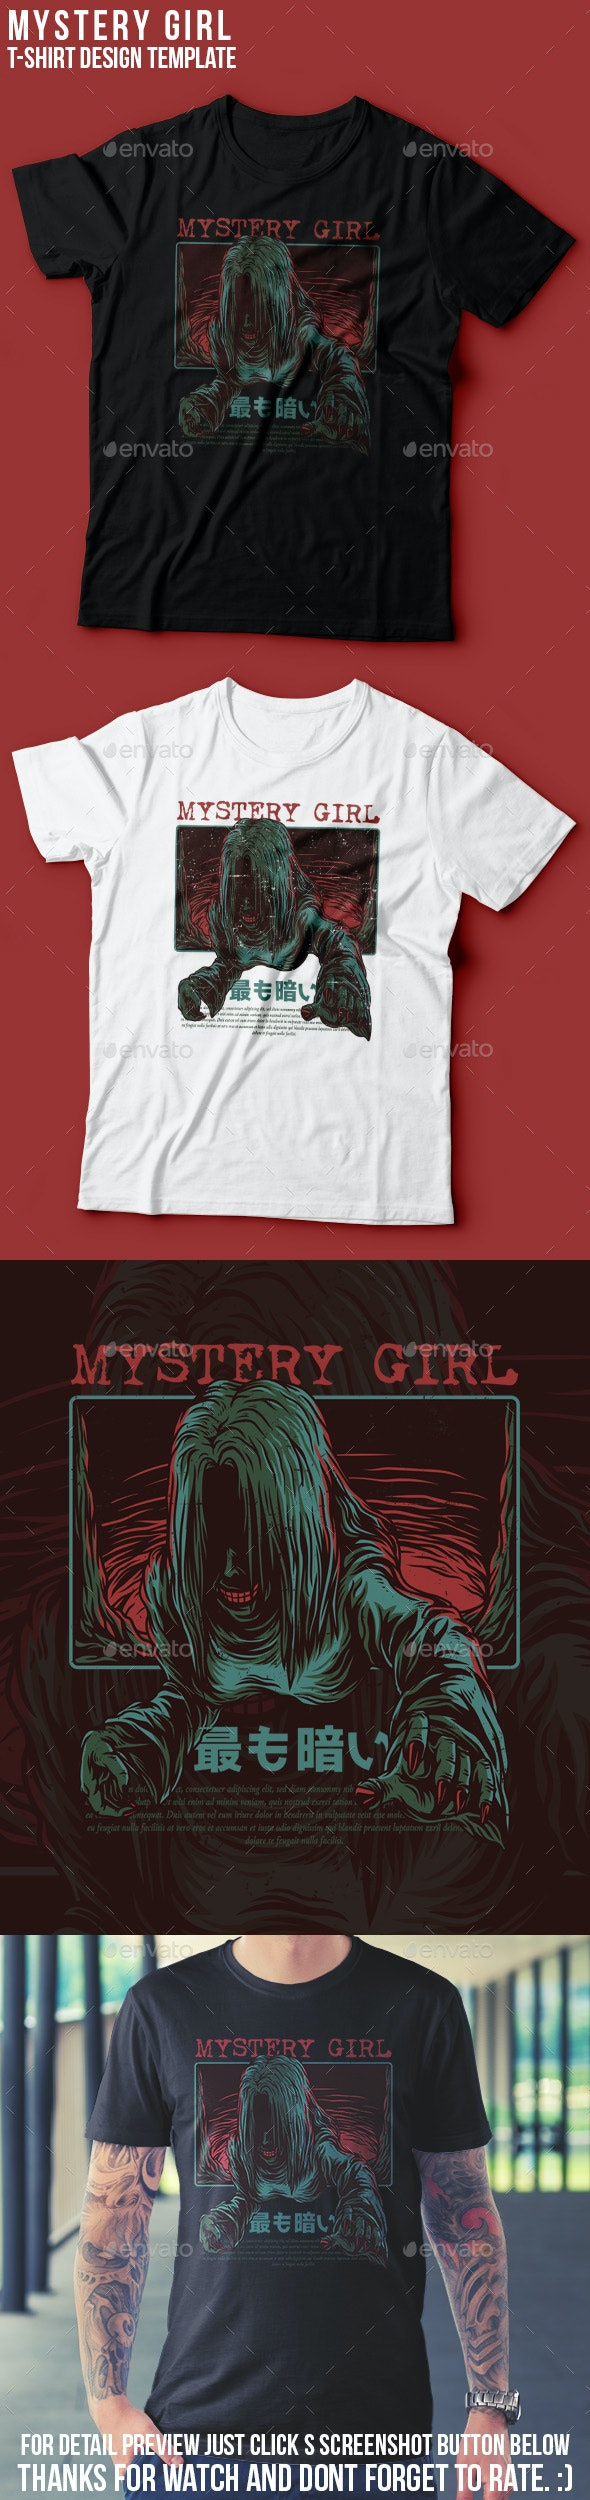 Mystery Girl T-Shirt Design - Events T-Shirts